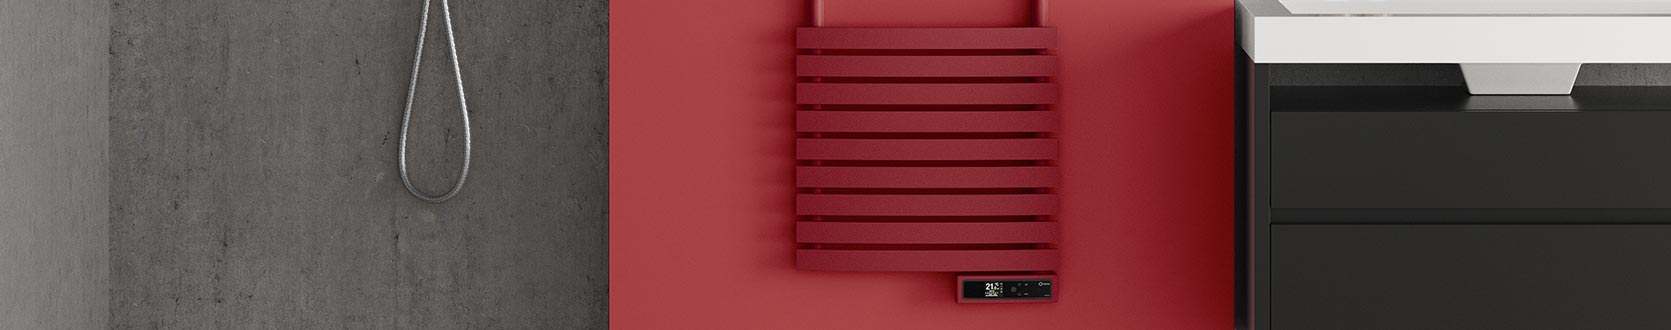 D Series designer electric towel rail with pearl ruby red powder coated finish